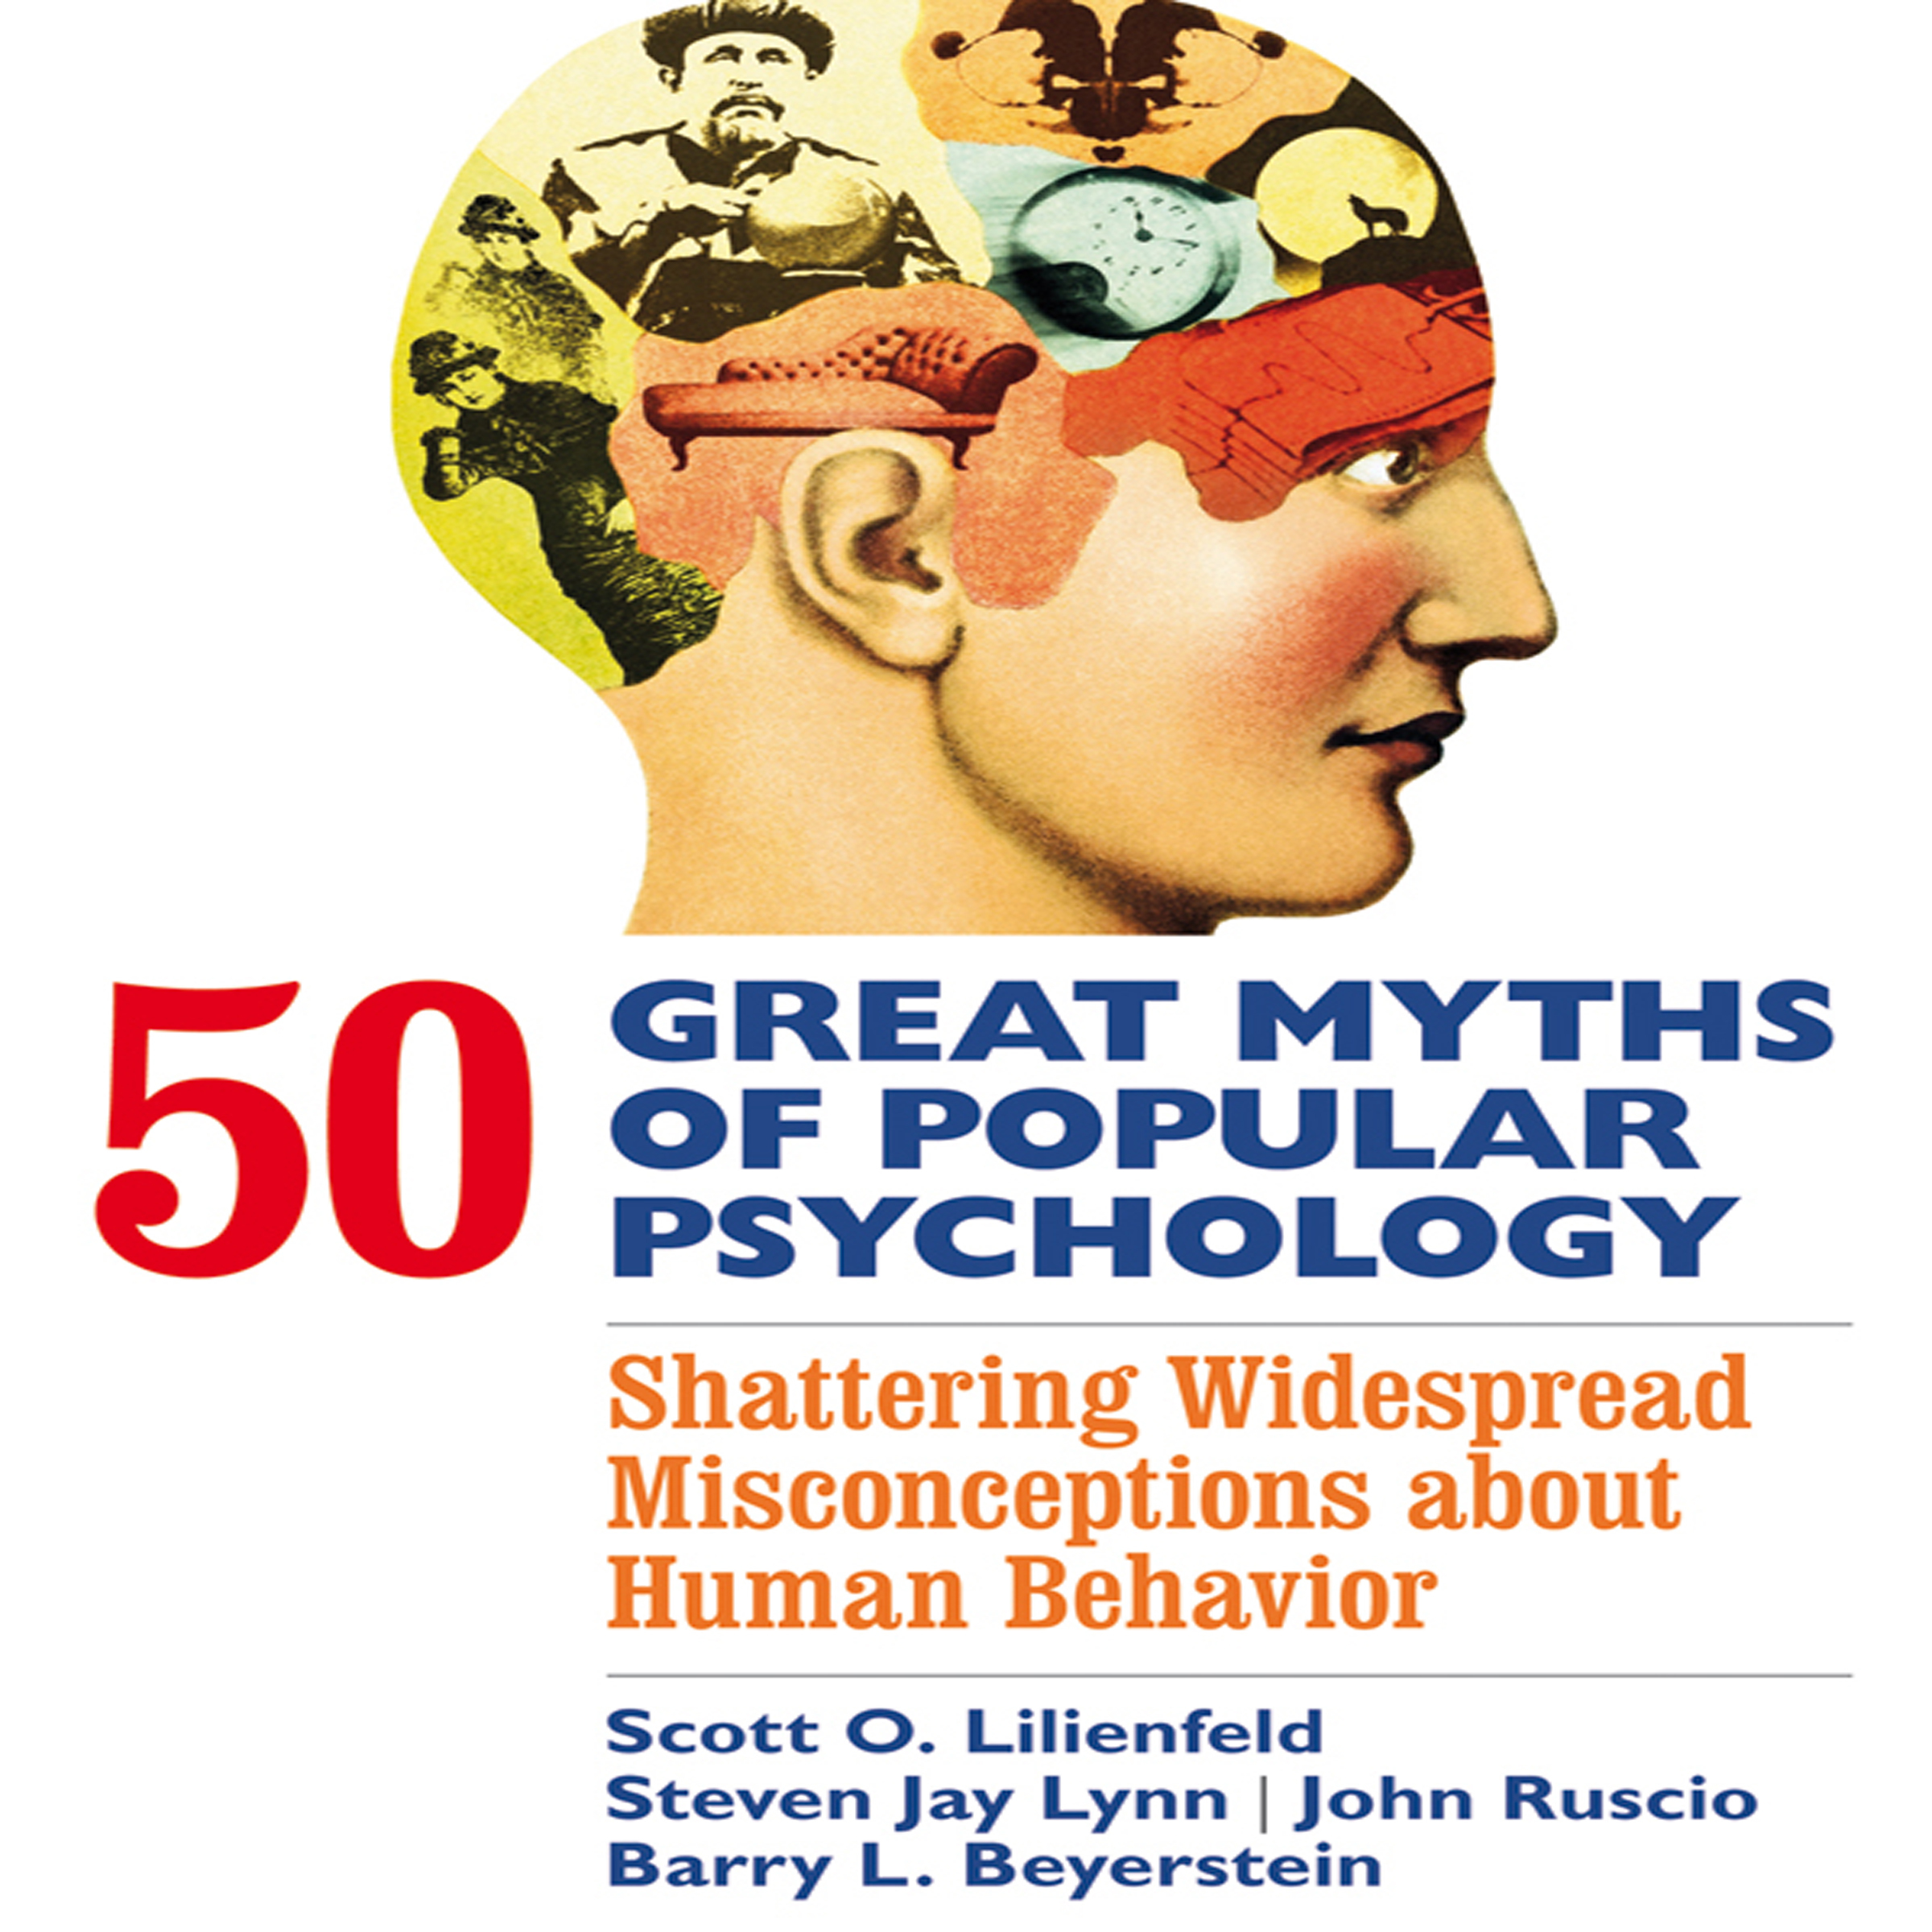 Printable 50 Great Myths of Popular Psychology : Shattering Widespread Misconceptions about Human Behavior Audiobook Cover Art